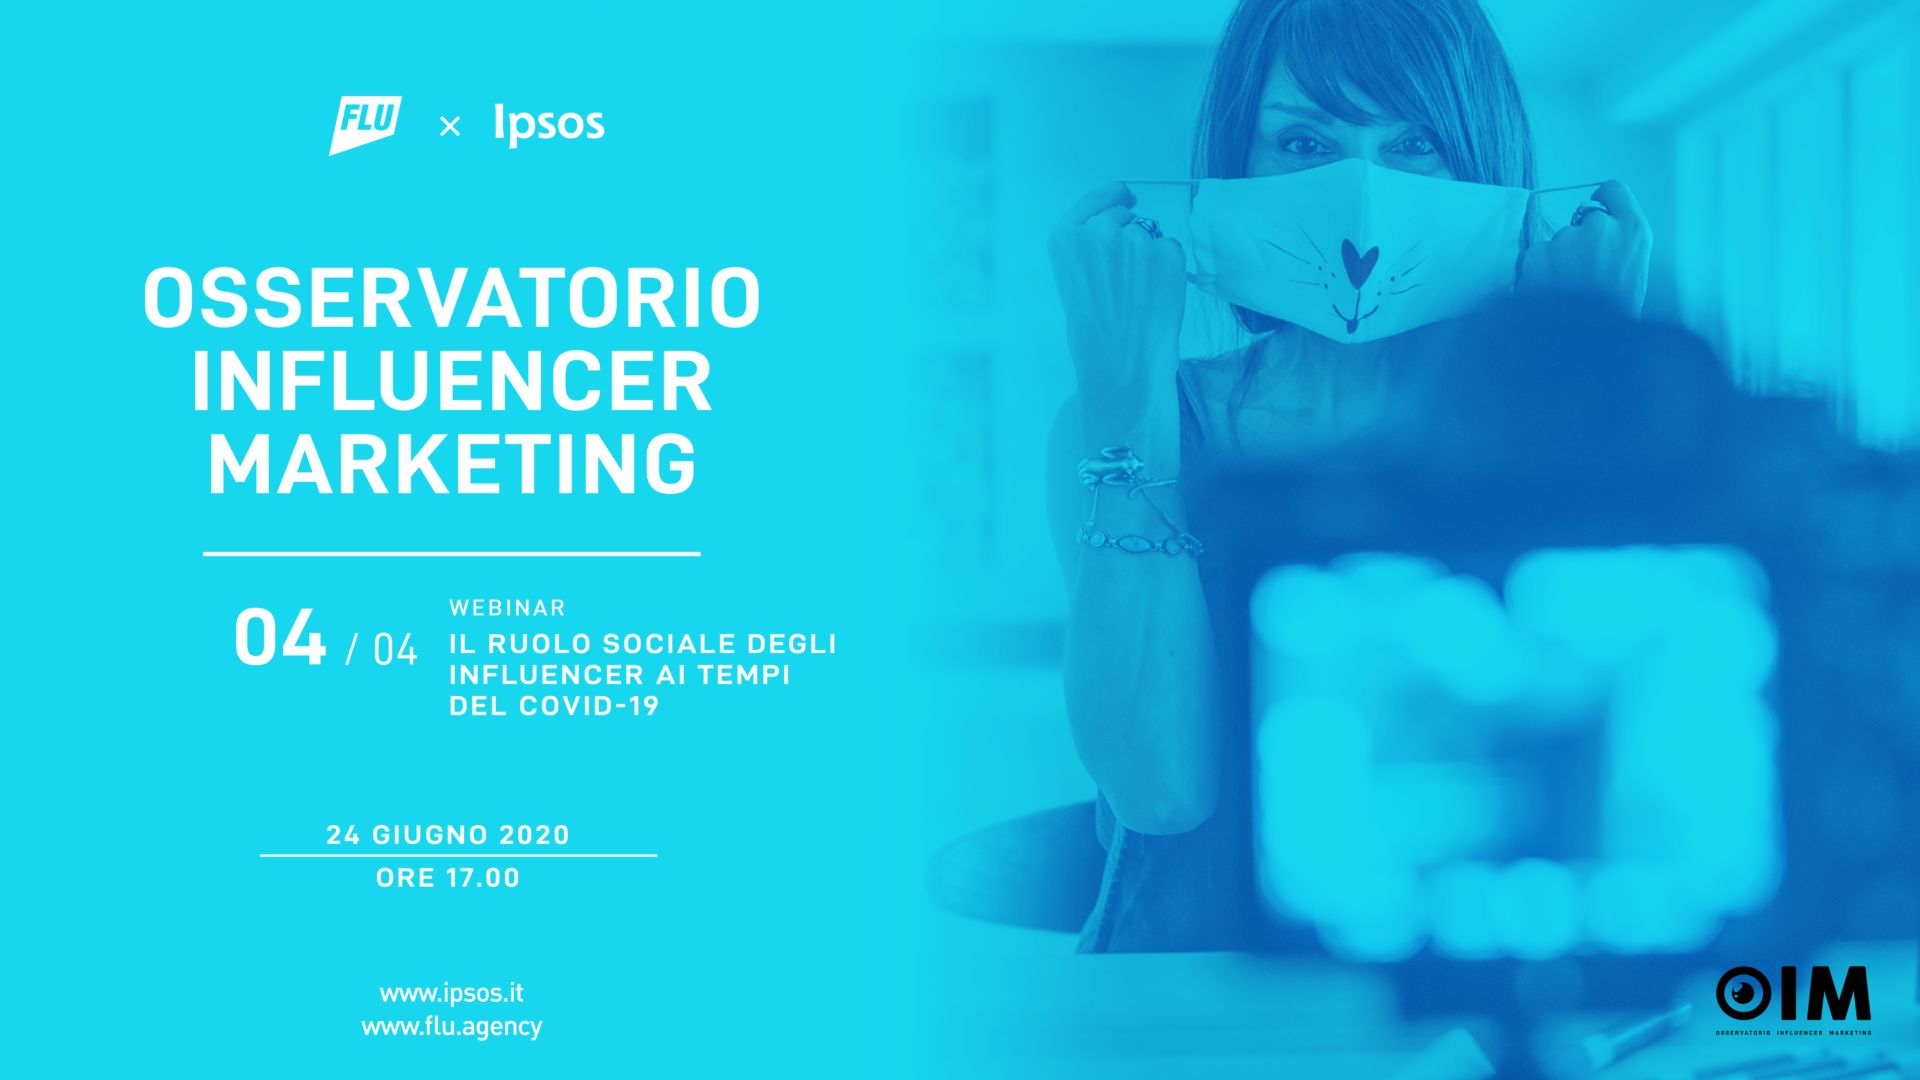 Influencer Marketing ai tempi del Covid-19